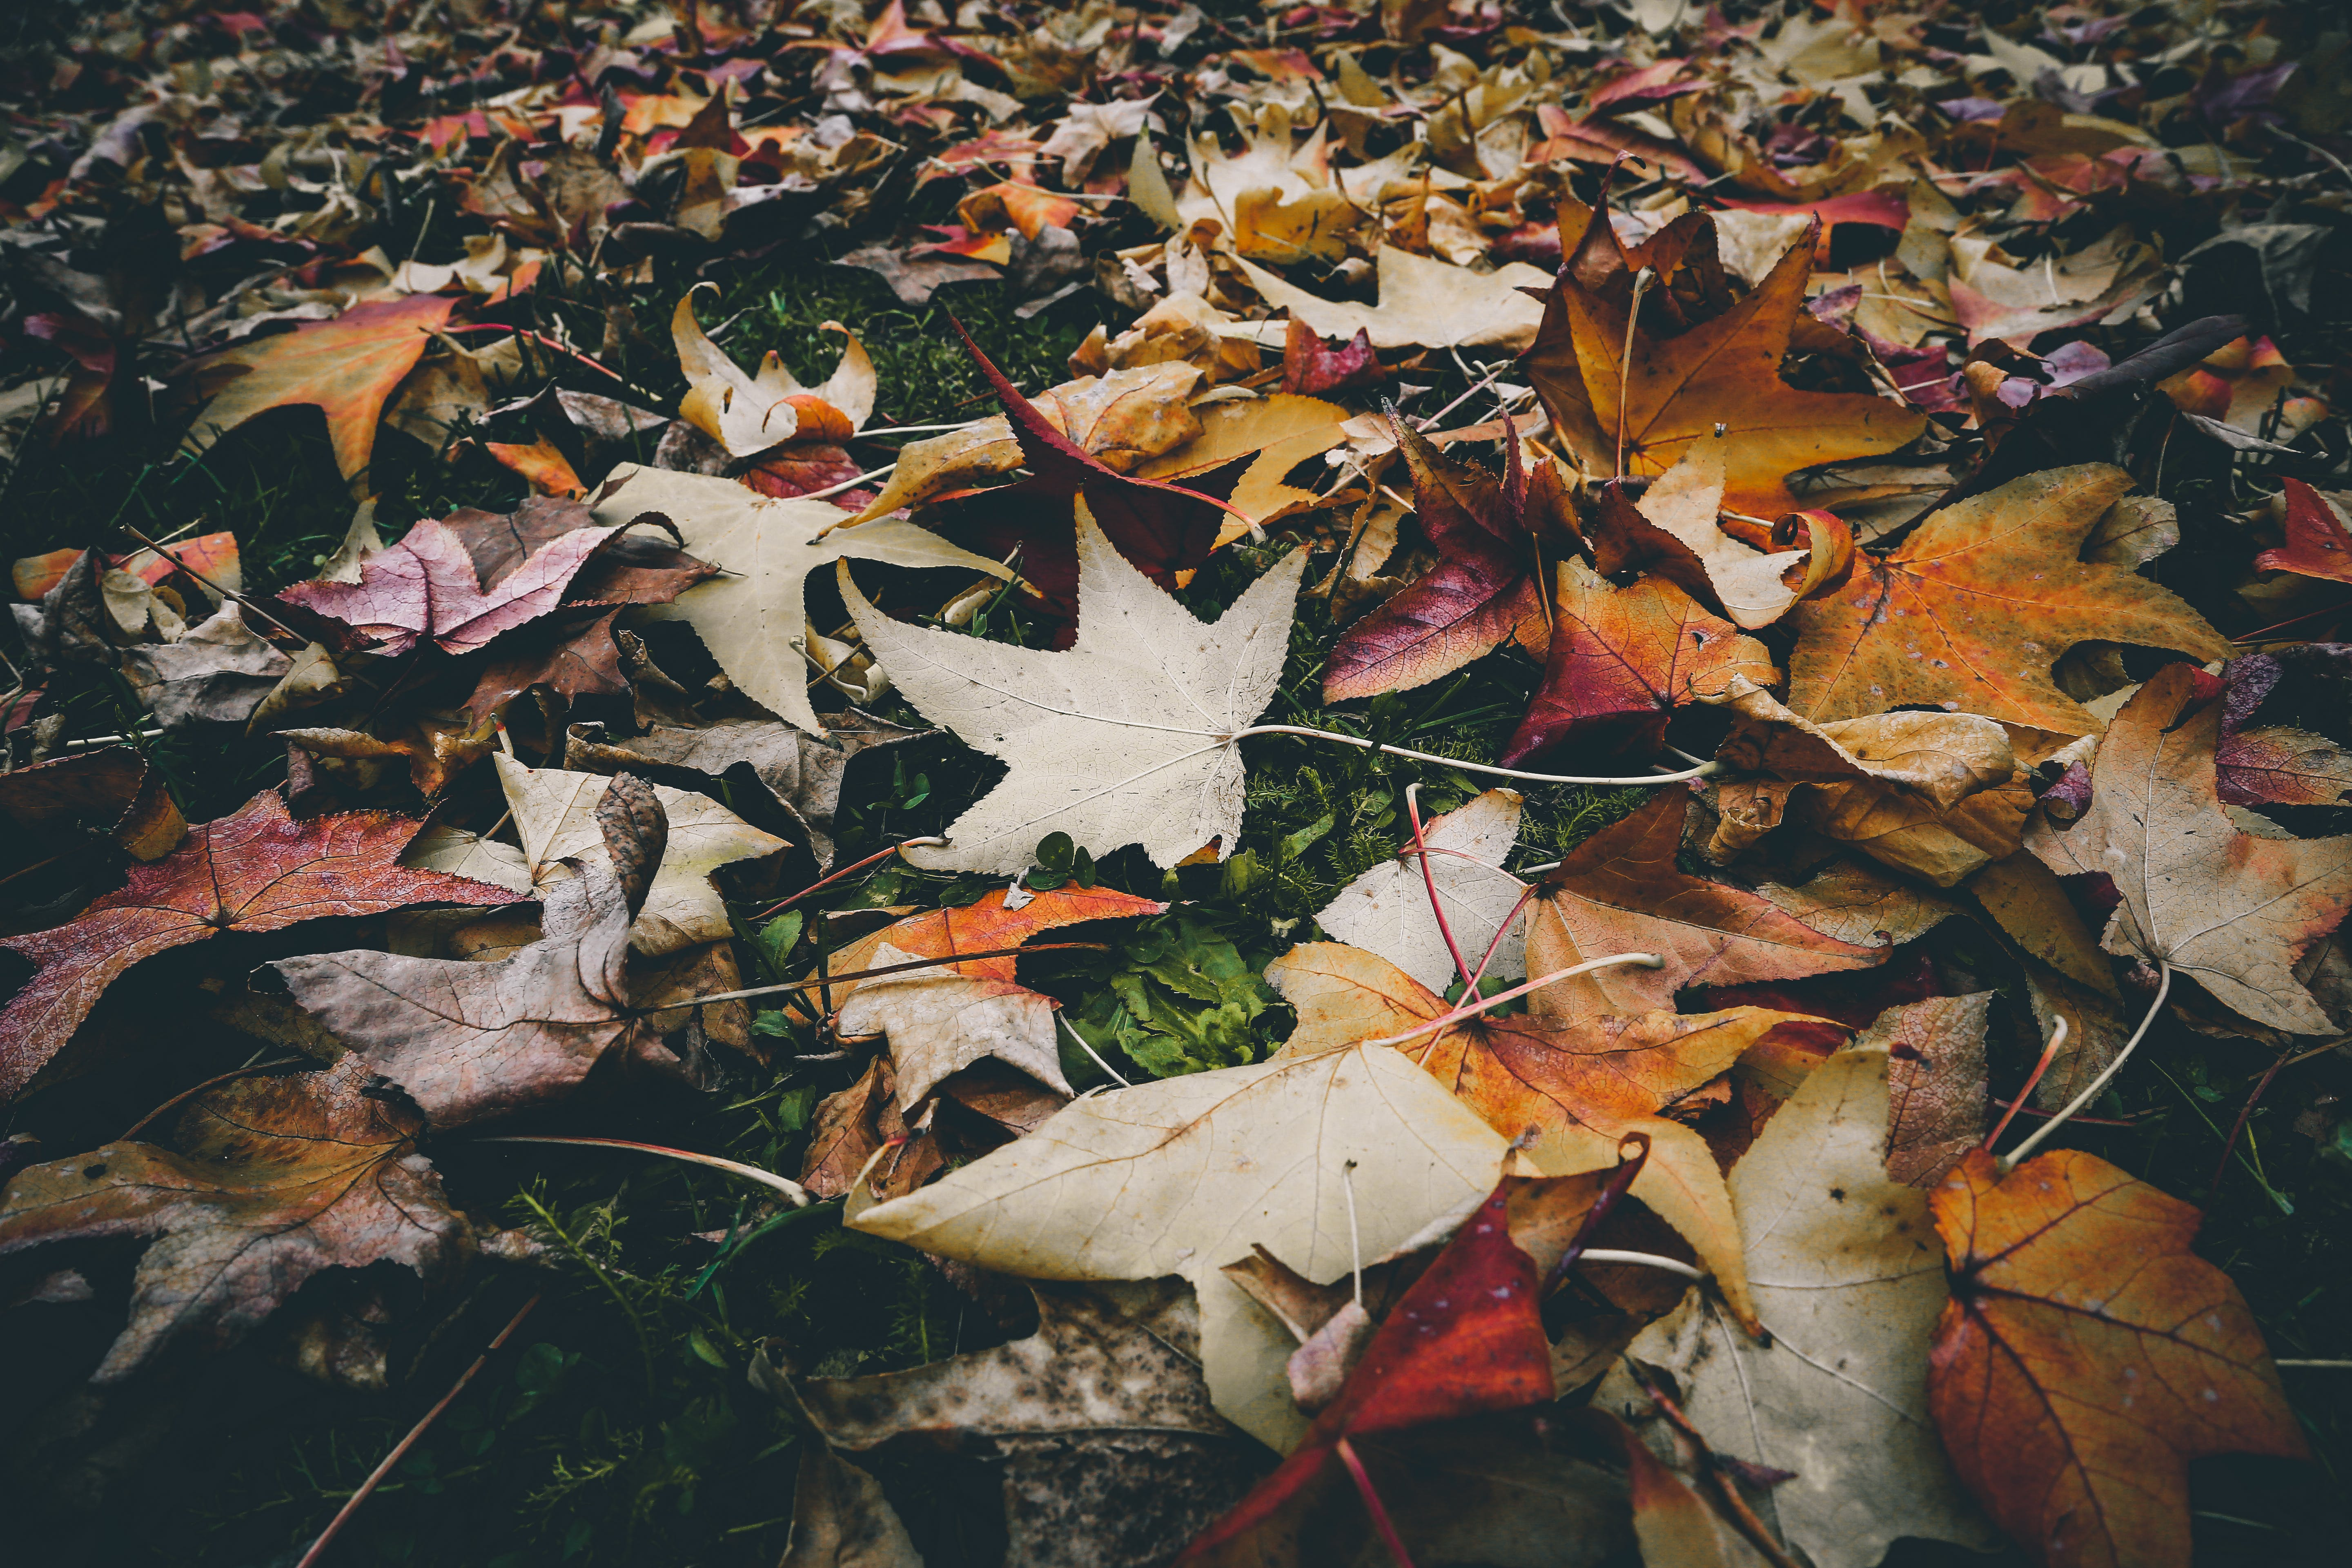 Withered Leaves on the Ground